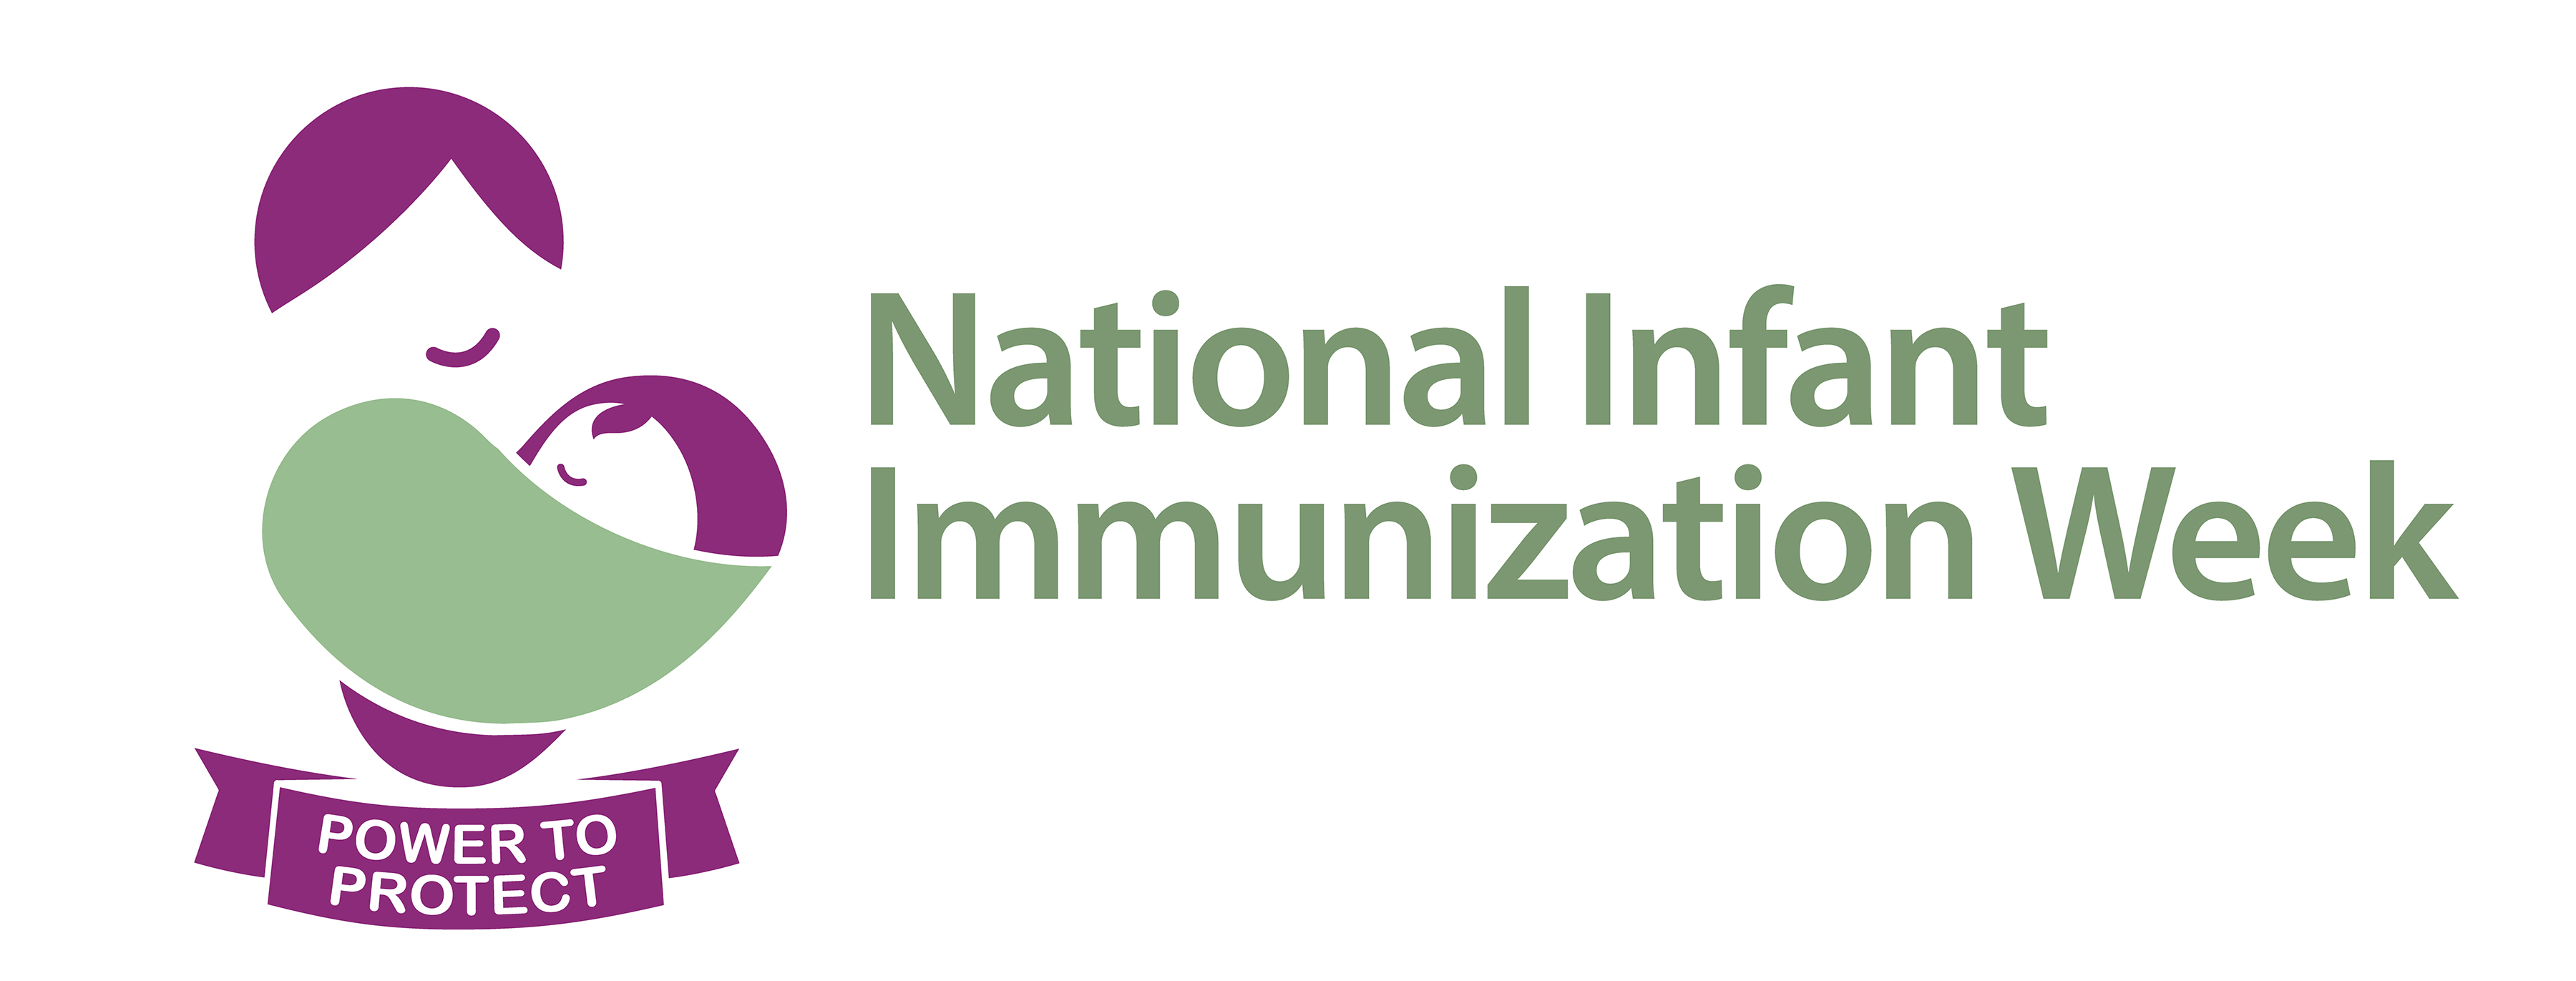 National Infant Immunization Week. Immunization. Power to Protect. Graphic of woman holding infant